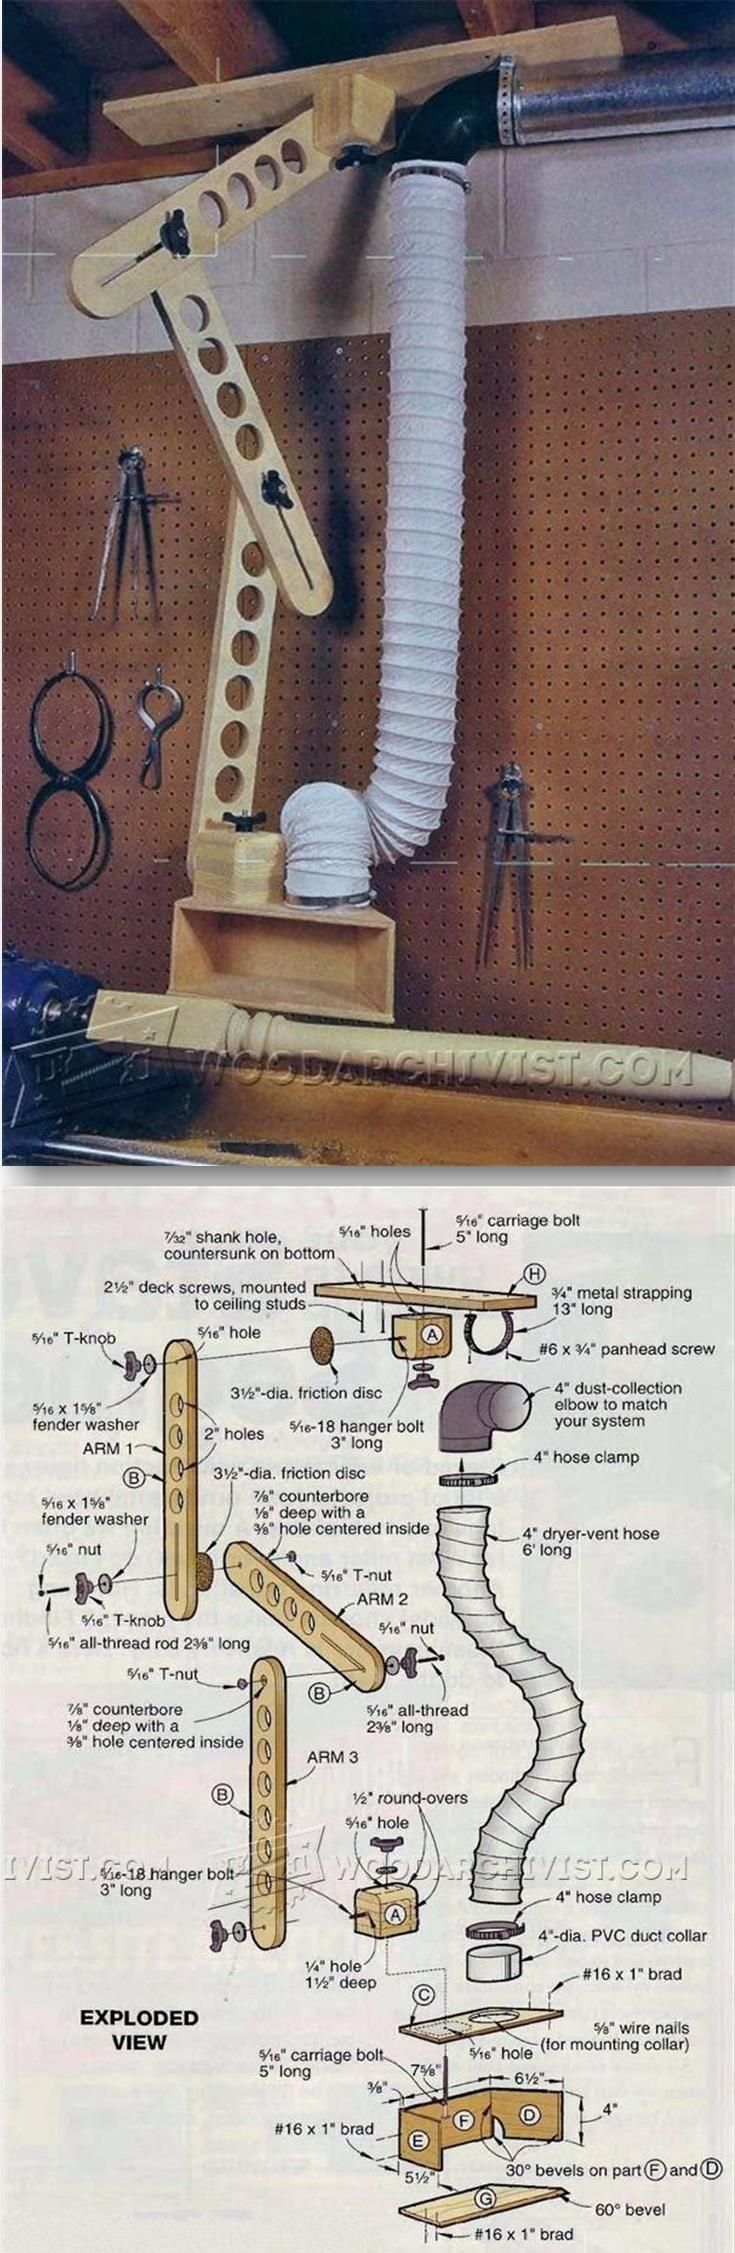 Lathe Dust Collection Boom Arm - Dust Collection Tips, Jigs and Fixtures | http://WoodArchivist.com